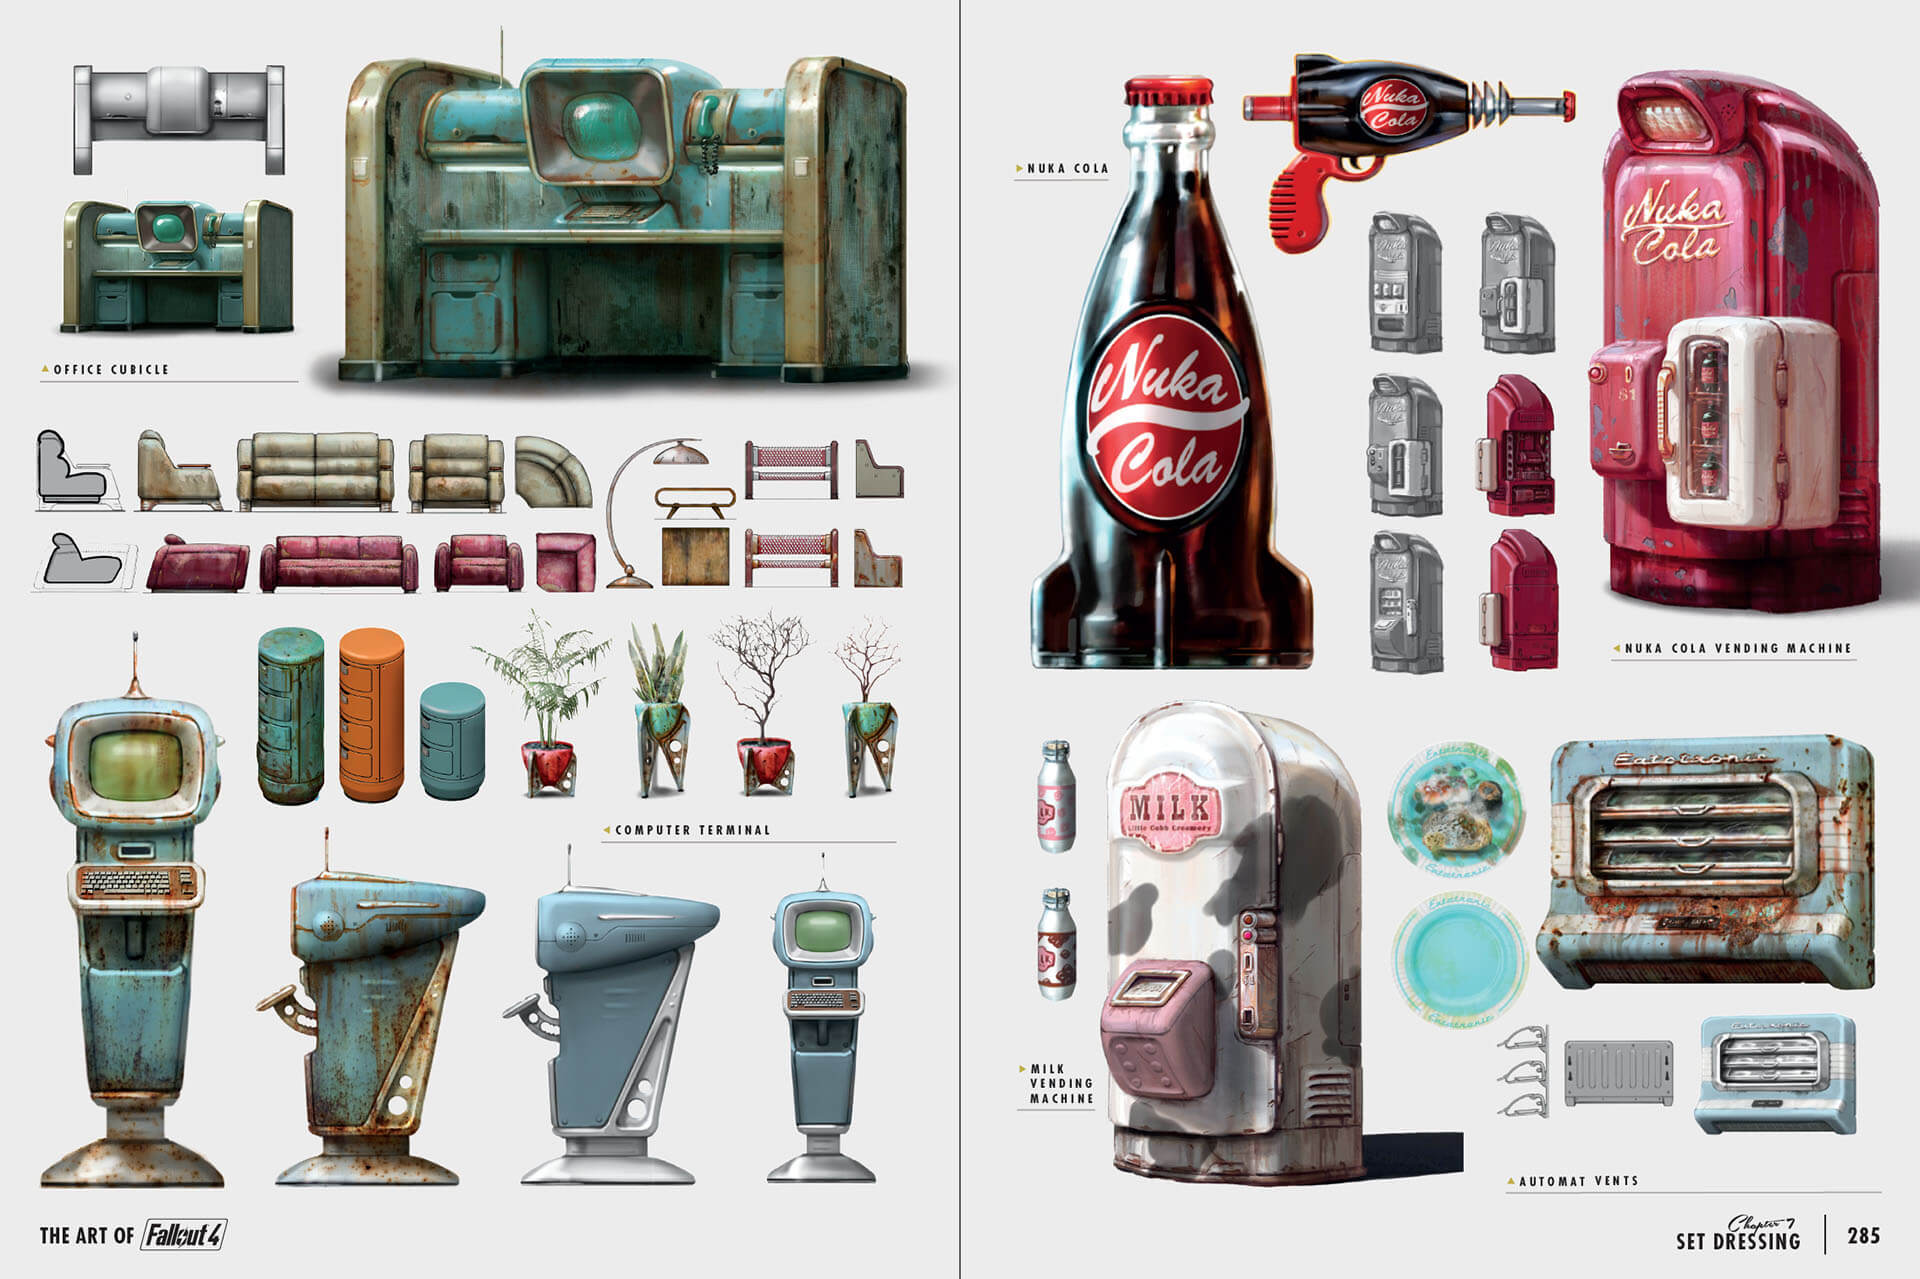 Art_of_fallout_4_285_fridge_concept_art